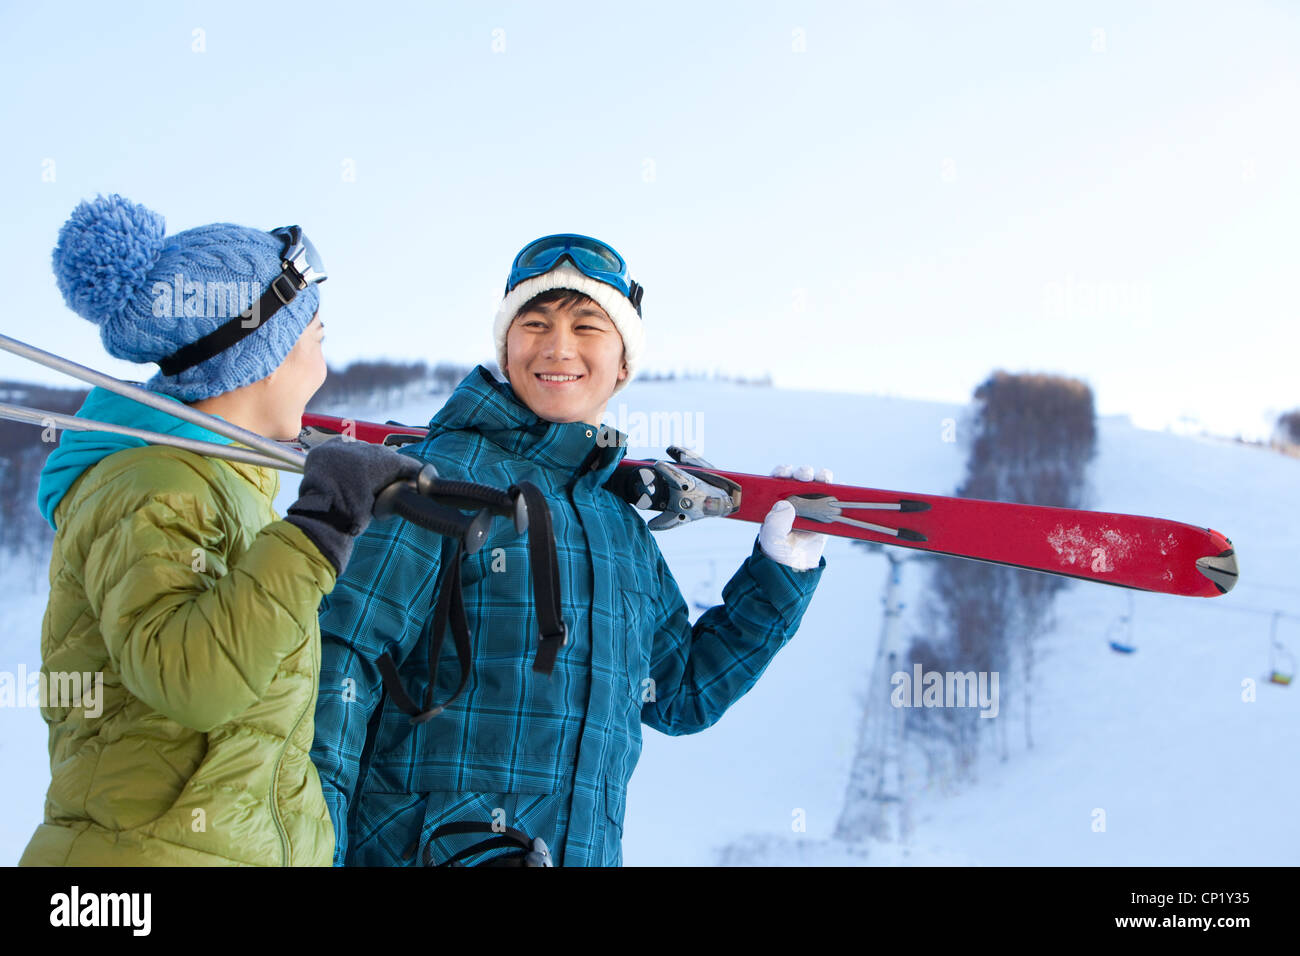 Young people going for skiing Stock Photo